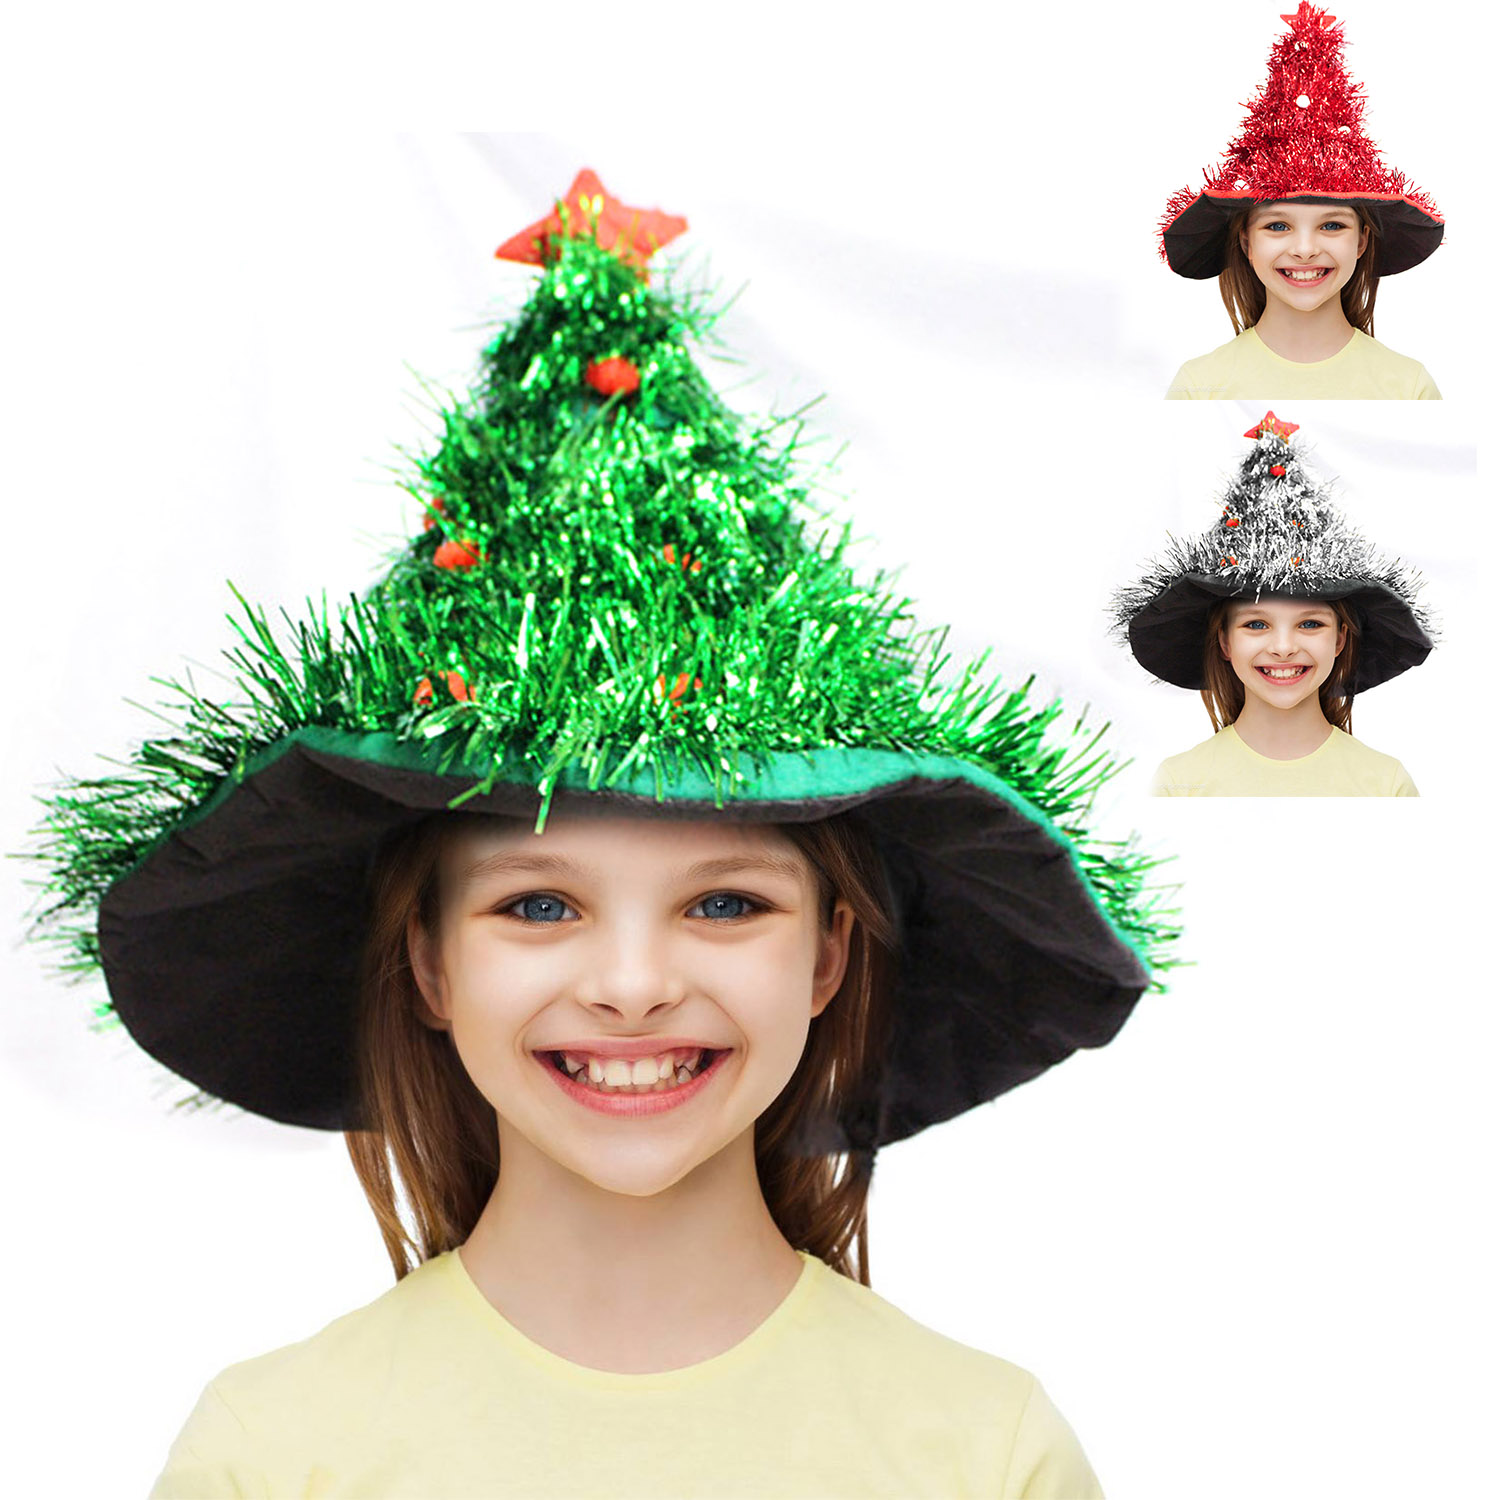 Funny Christmas Xmas Tree Hat Cap Headwear For Kids Adults Cosplay Masquerade Fancy Dress Party Costume Accessories